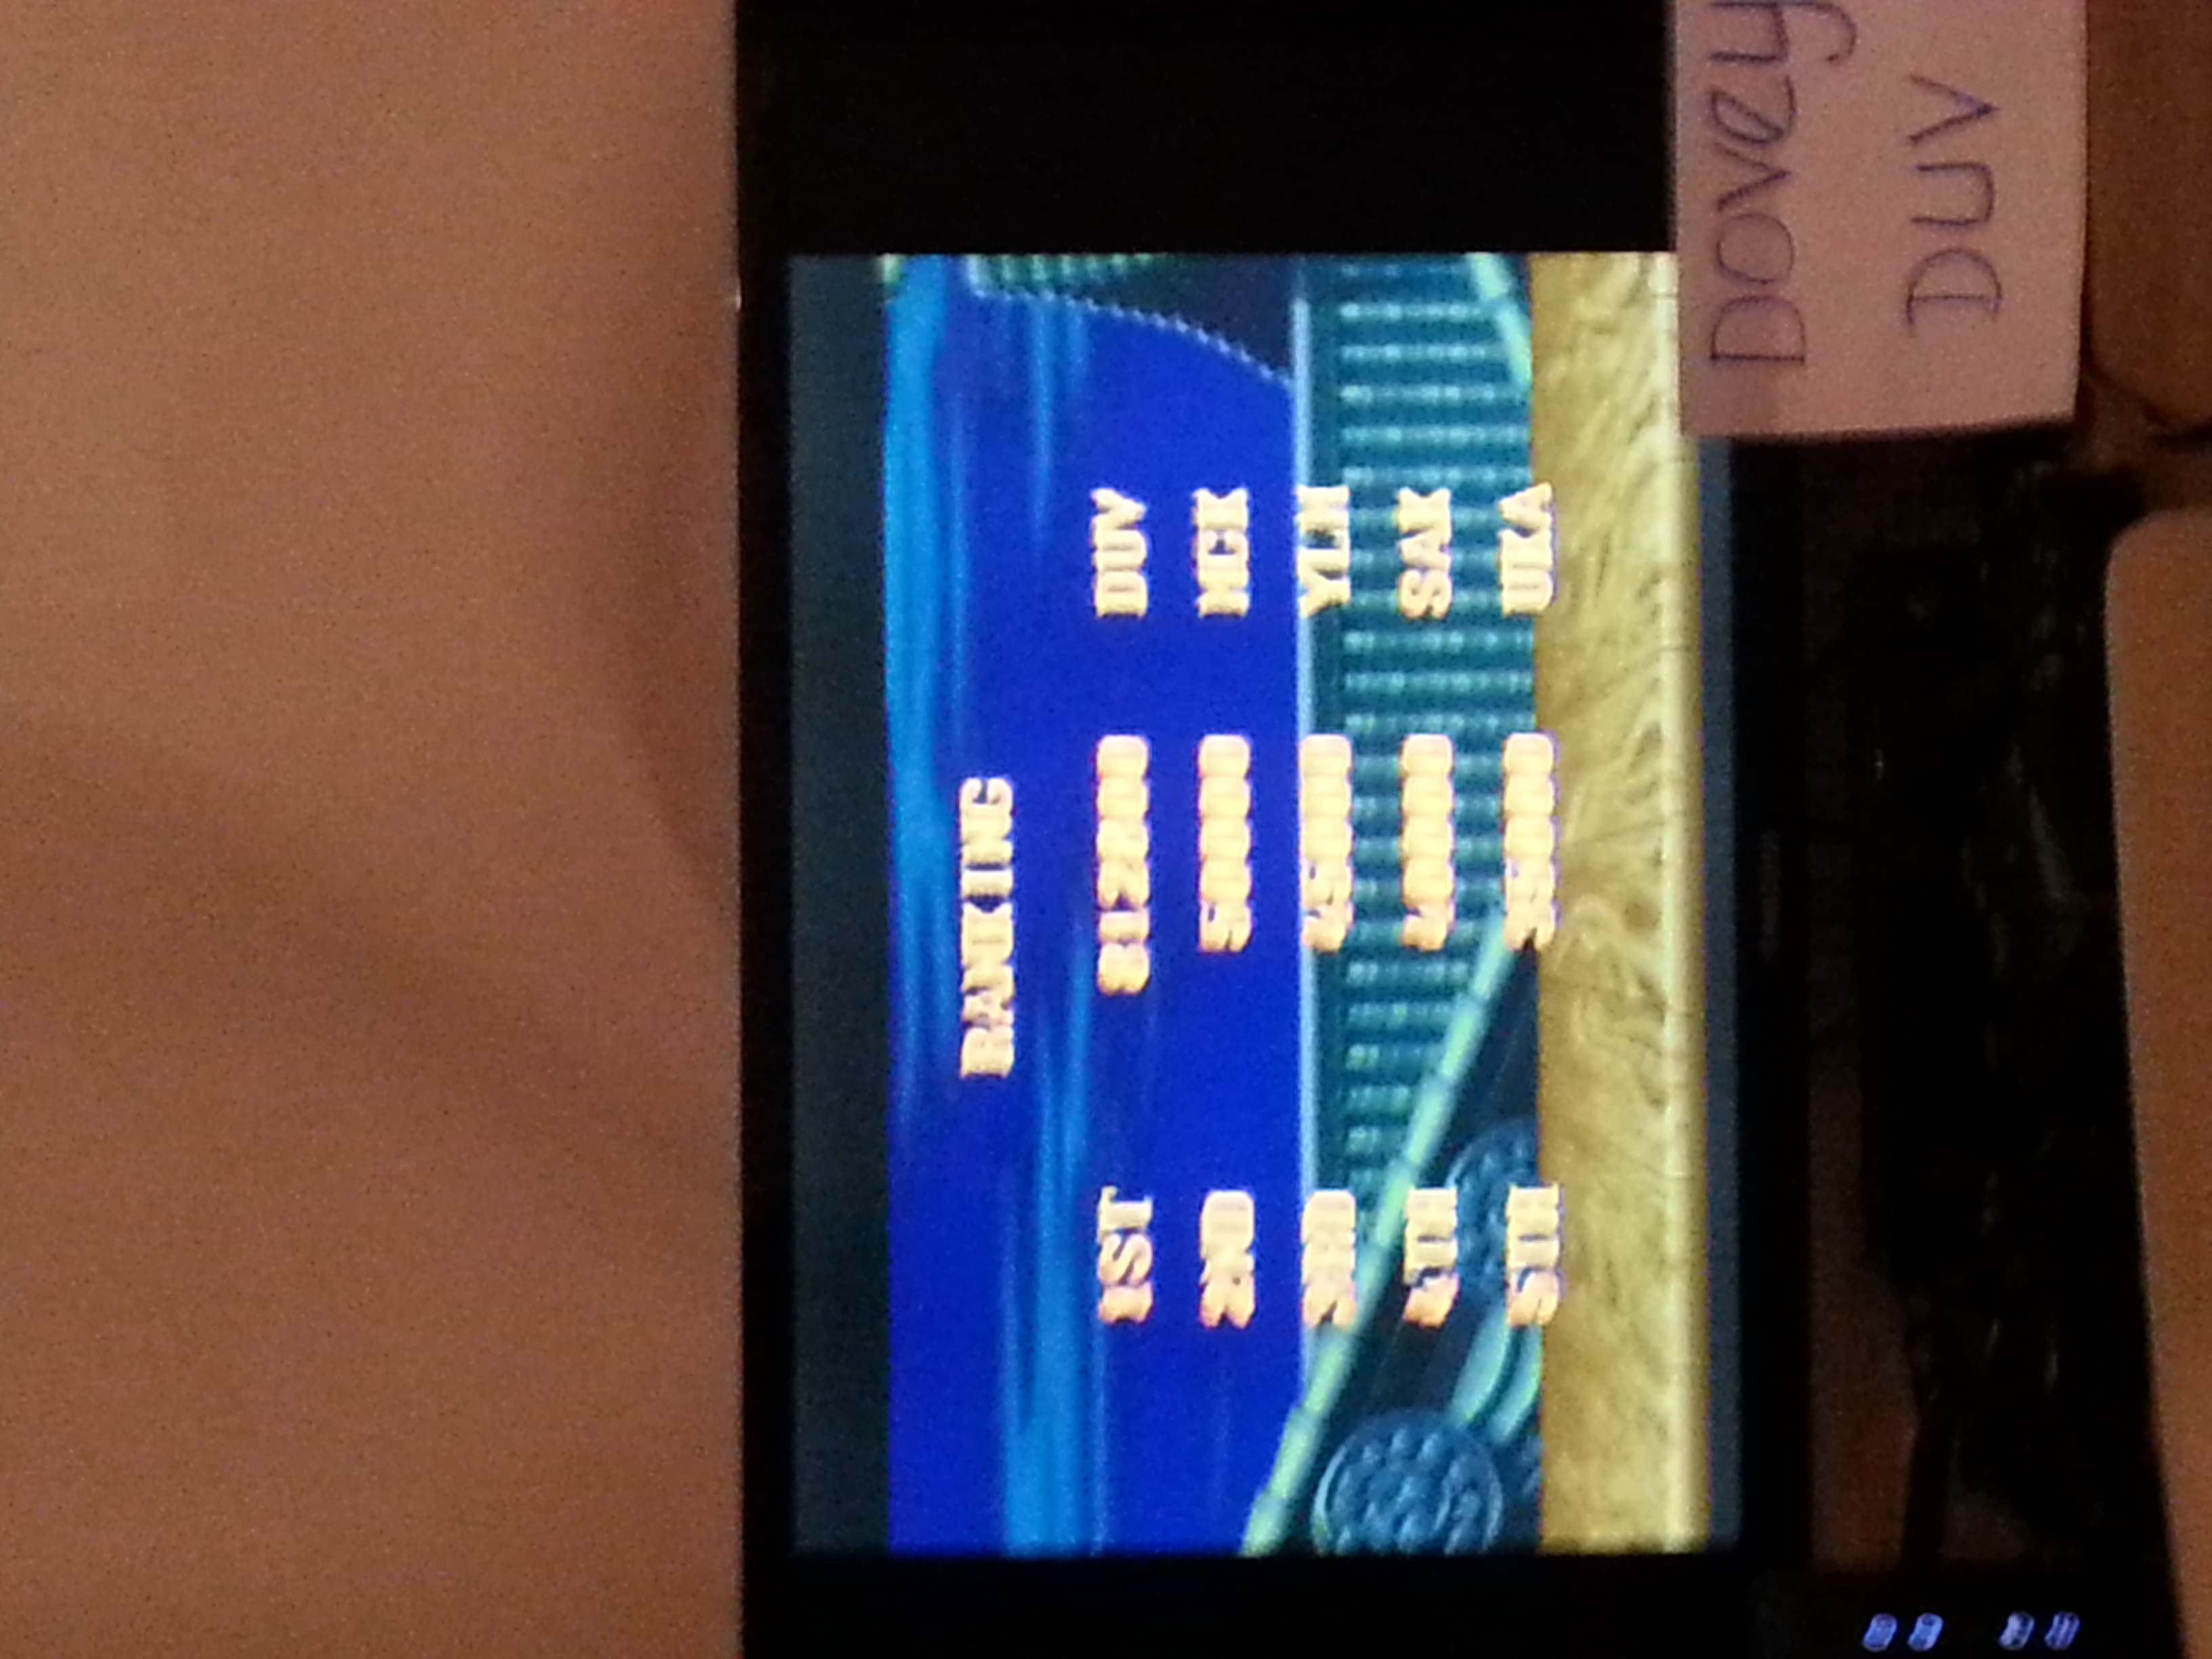 dovey: Street Fighter 2 Turbo: Hyper Fighting: Normal (SNES/Super Famicom Emulated) 812,100 points on 2014-12-09 16:02:36